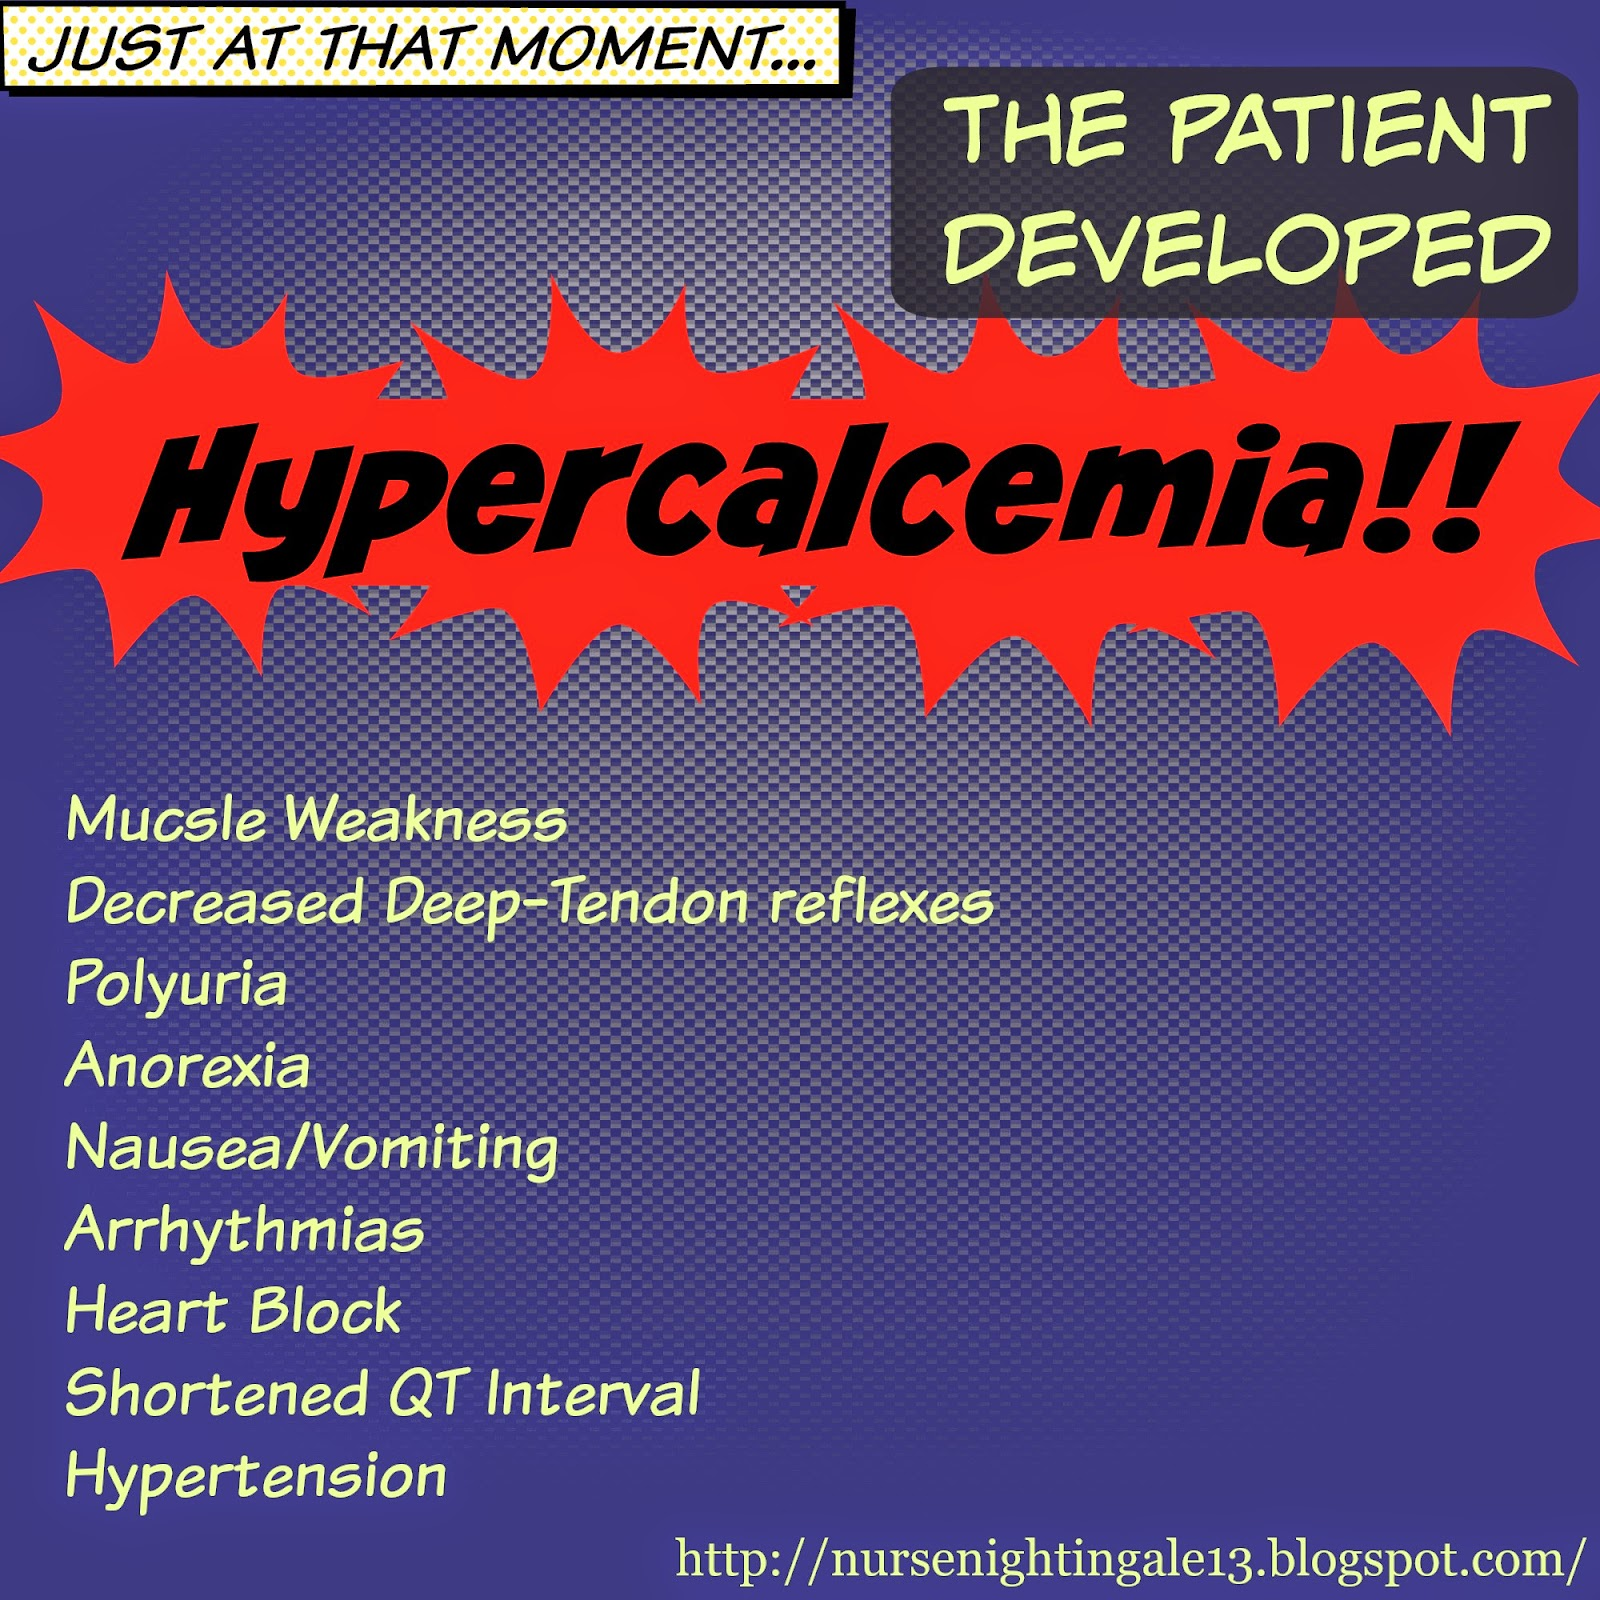 Hypercalcemia, excess calcium, nursing school, nurse, RN, electrolytes, imbalances, cancer, hyperparathyroidism